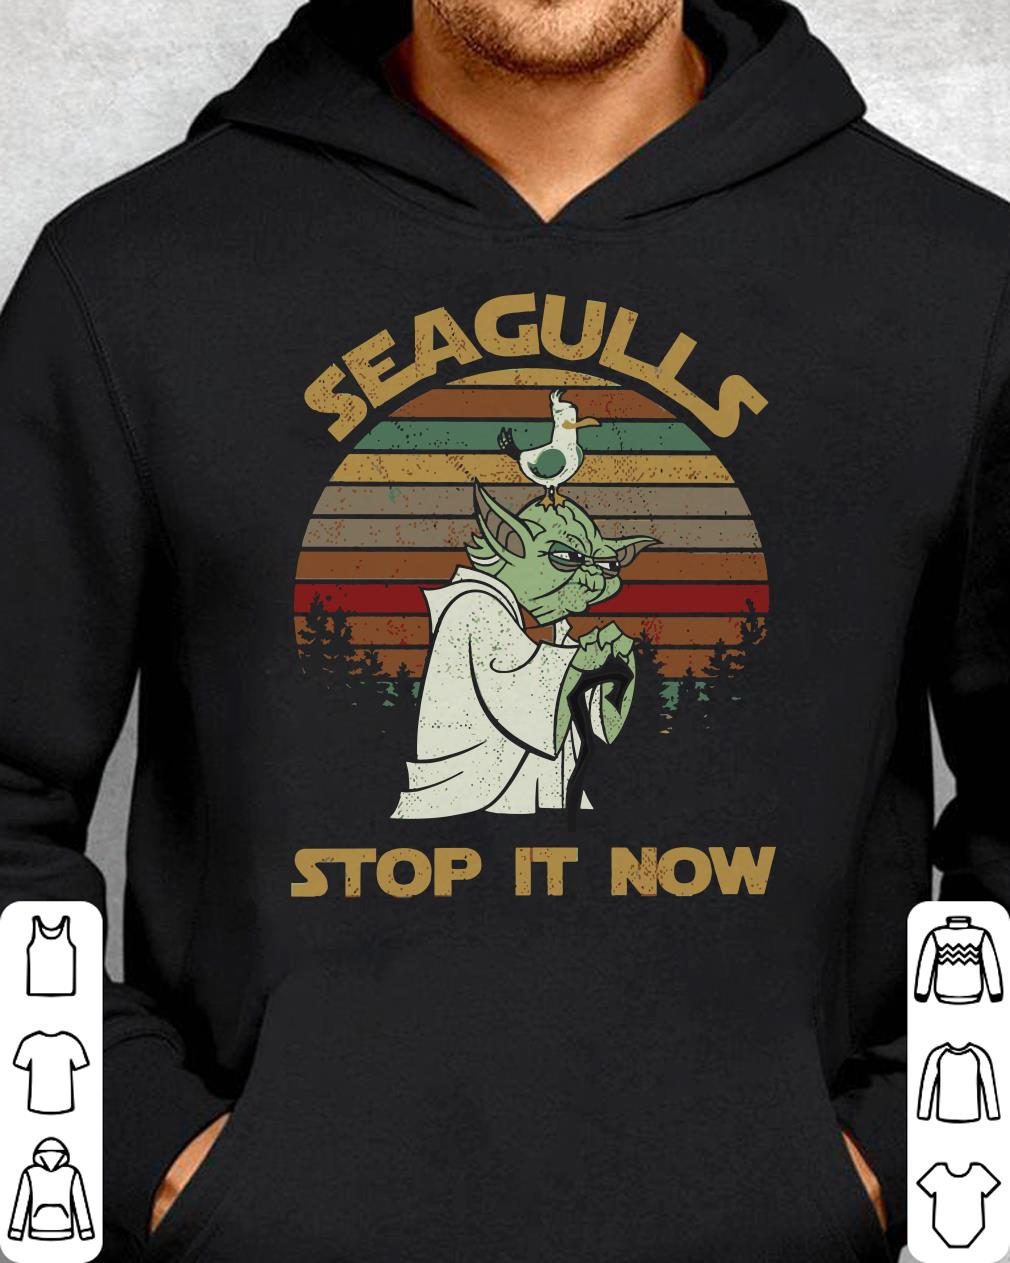 2bc8c99f Premium Trending Christmas Presents Who Love: Seagulls, Retro Style,  Sunset, Star War, Jedi